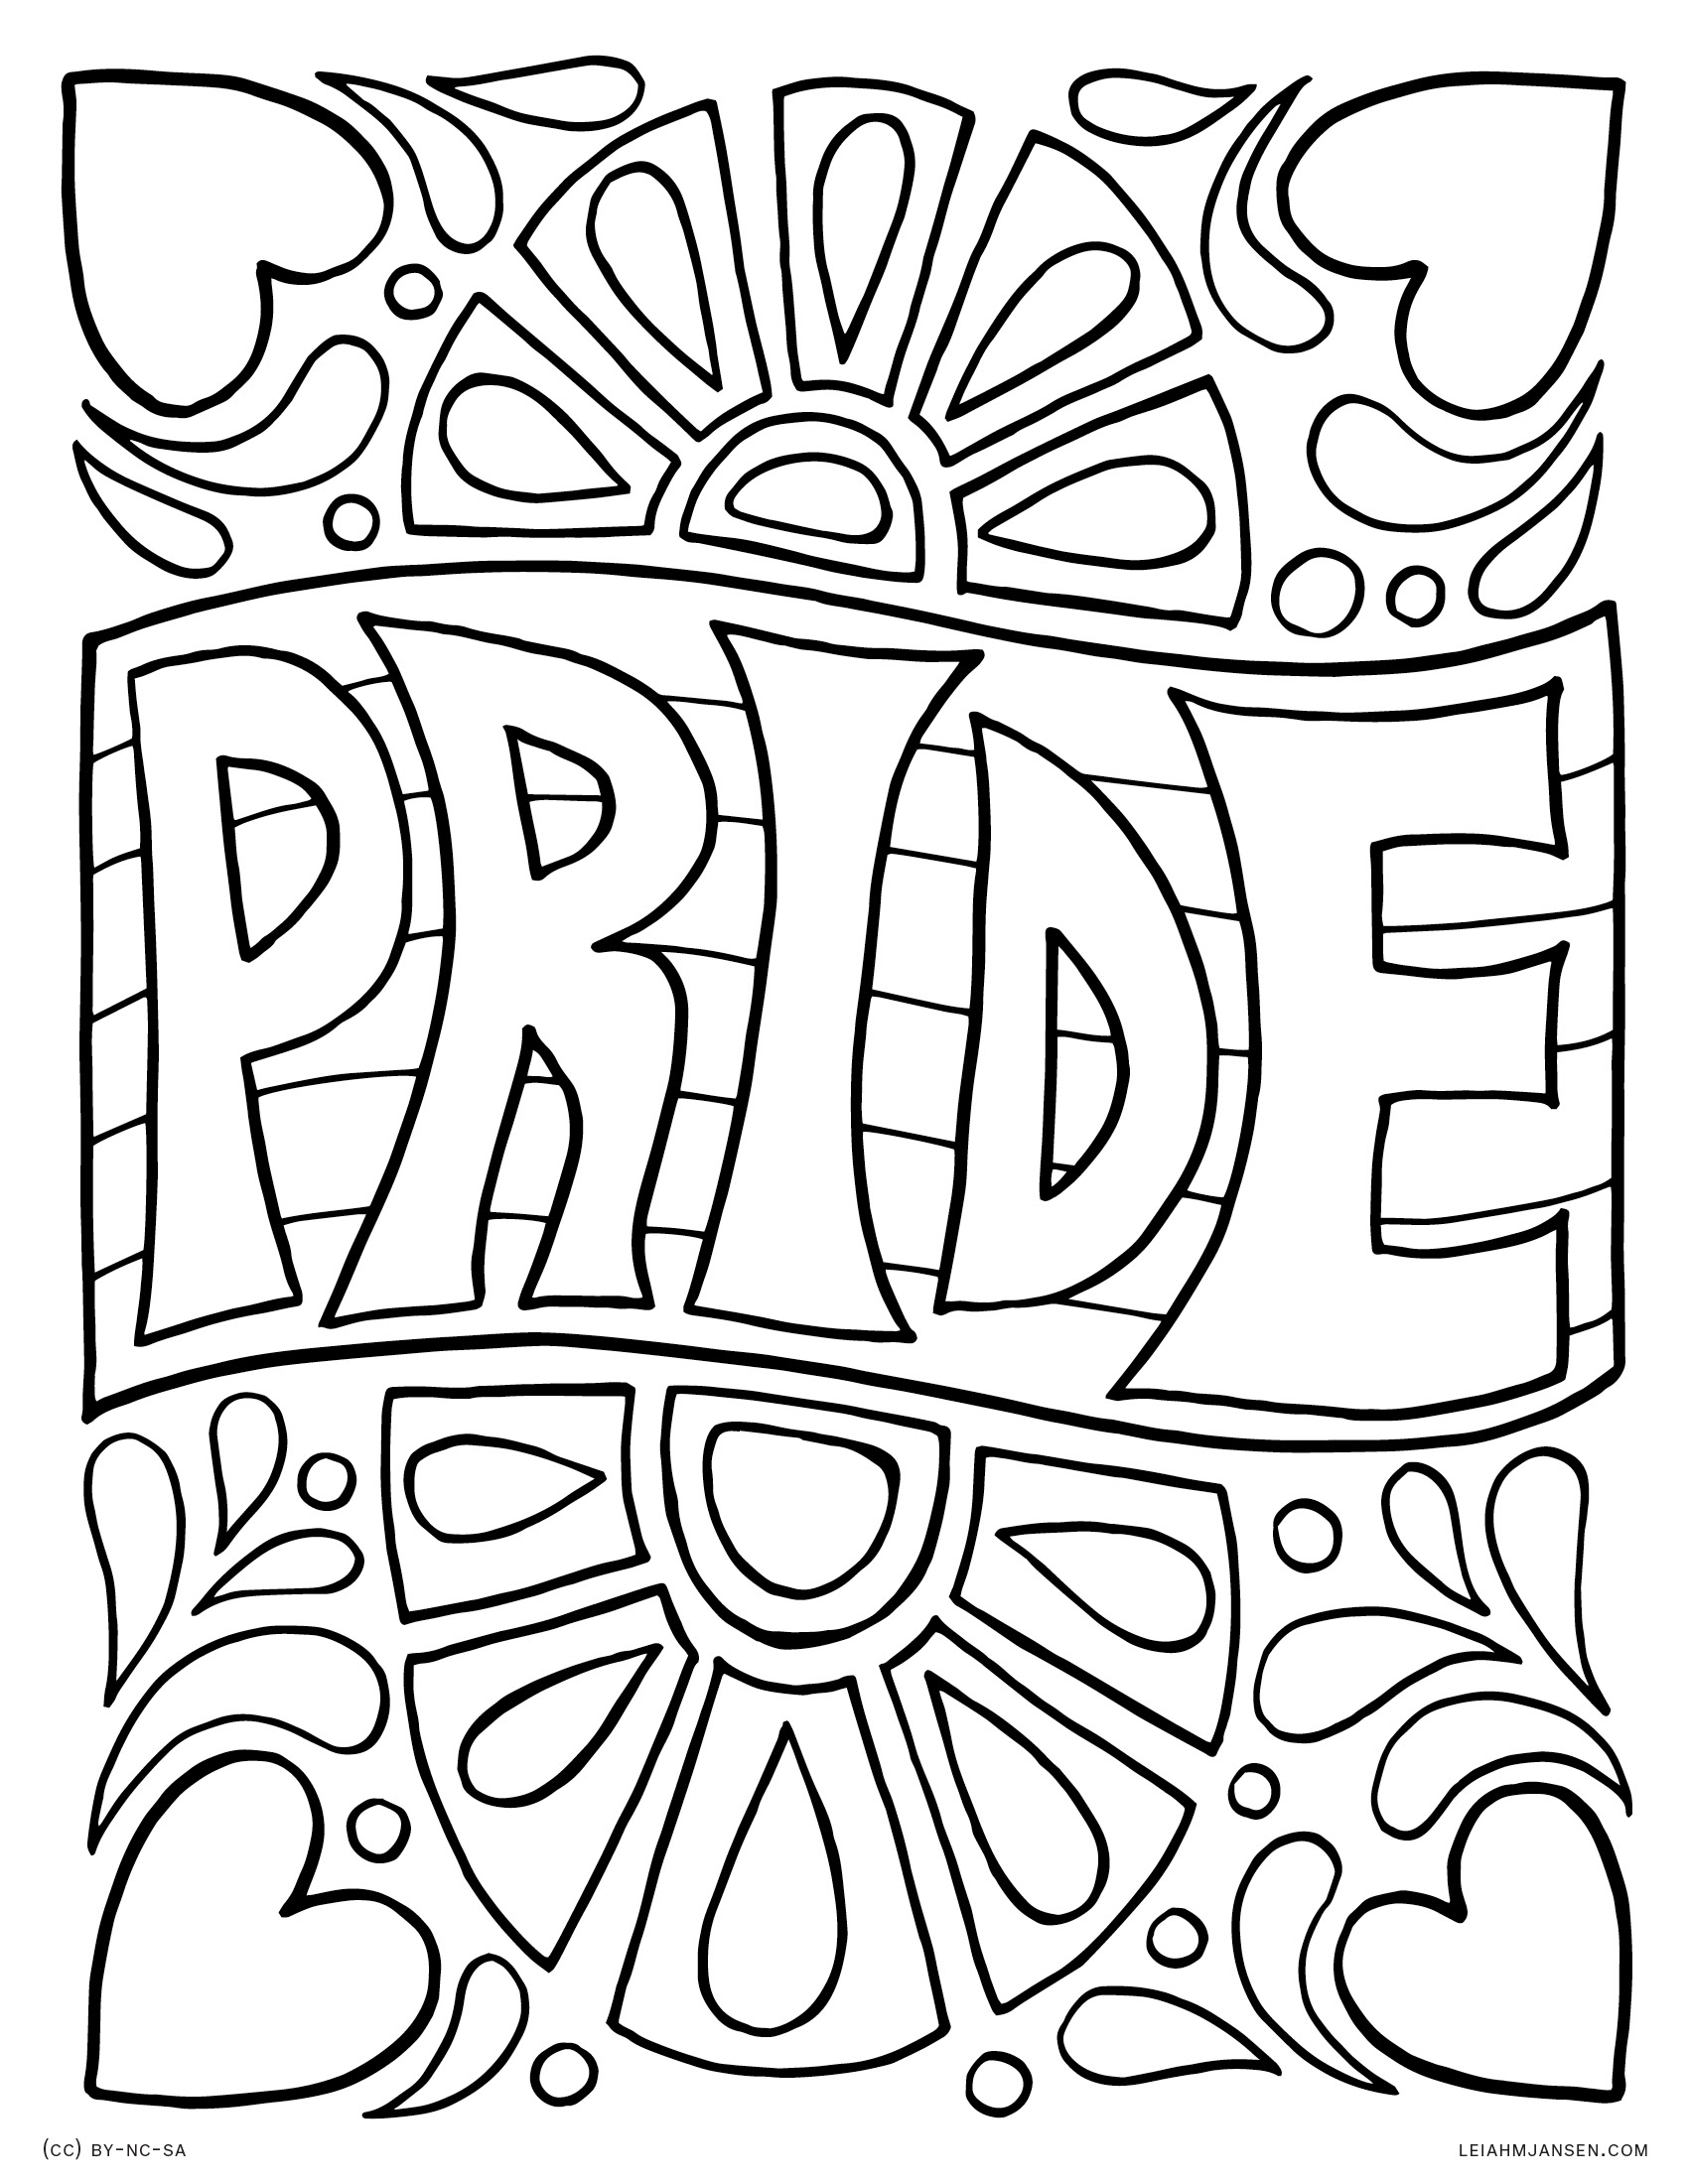 lgbt flag coloring pages coloring pages for pride coloring home coloring lgbt flag pages